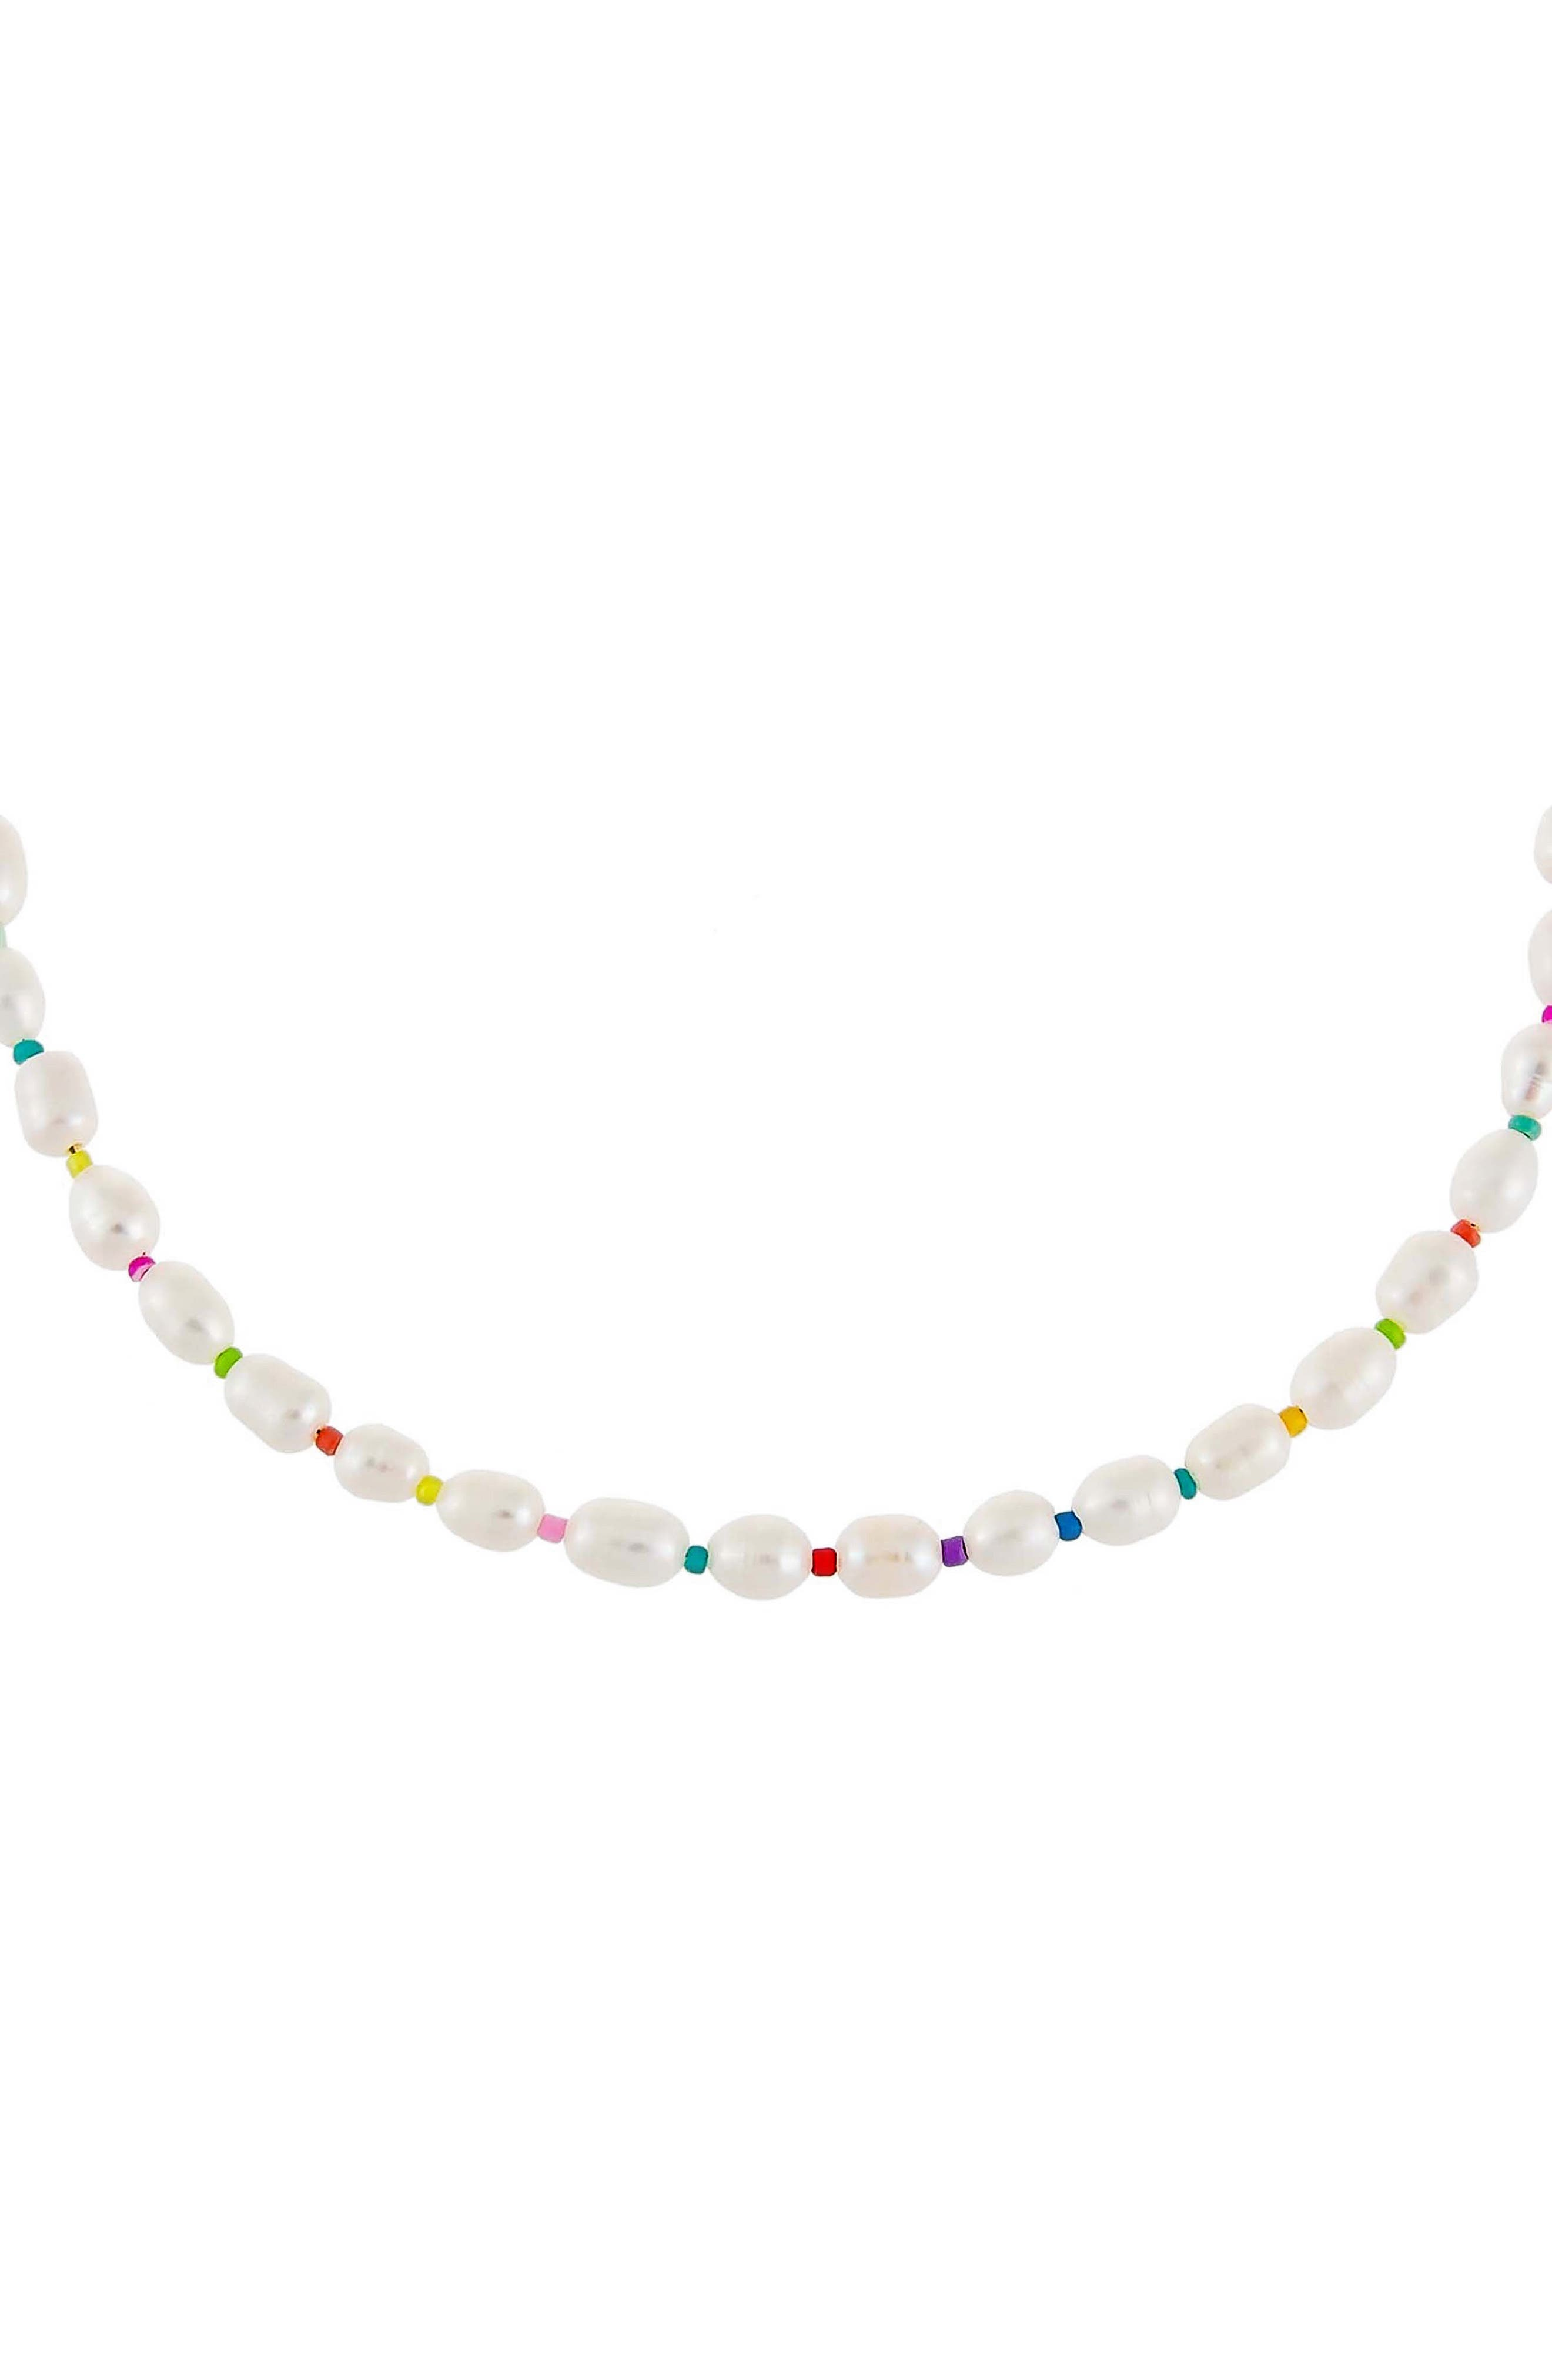 Women's Adina's Jewels Multicolor Pearl Beaded Necklace